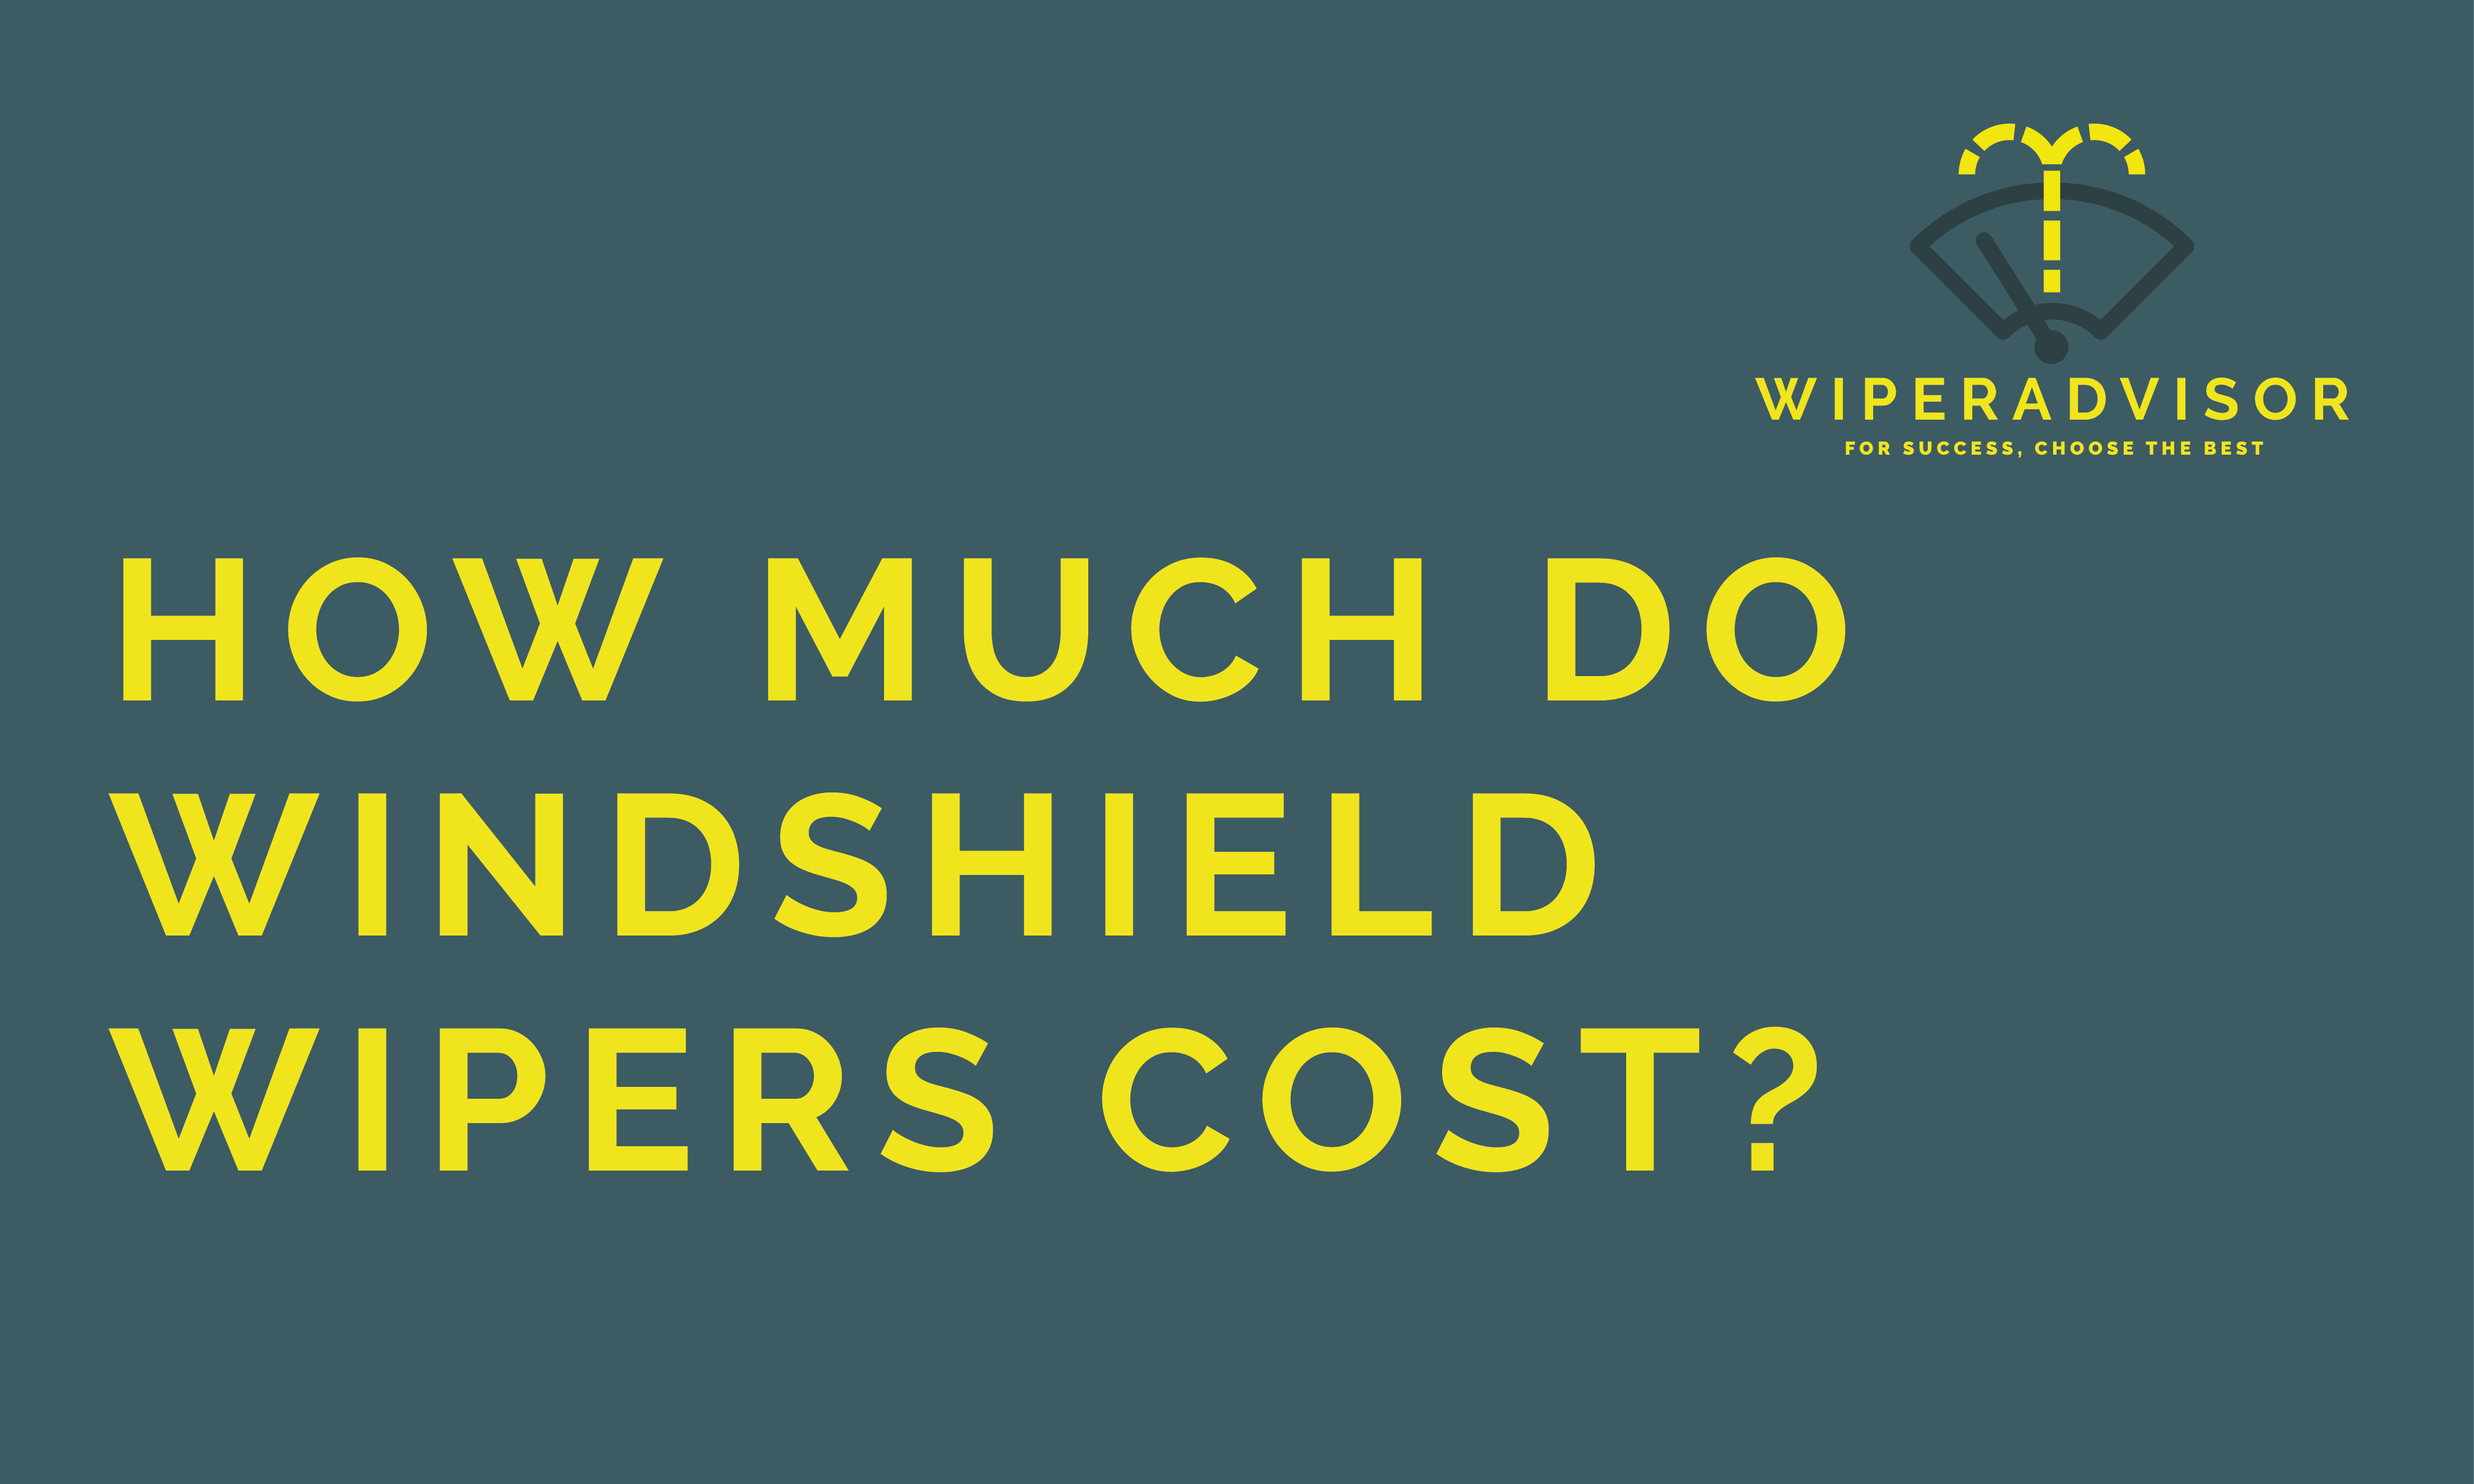 How much do windshield wipers cost